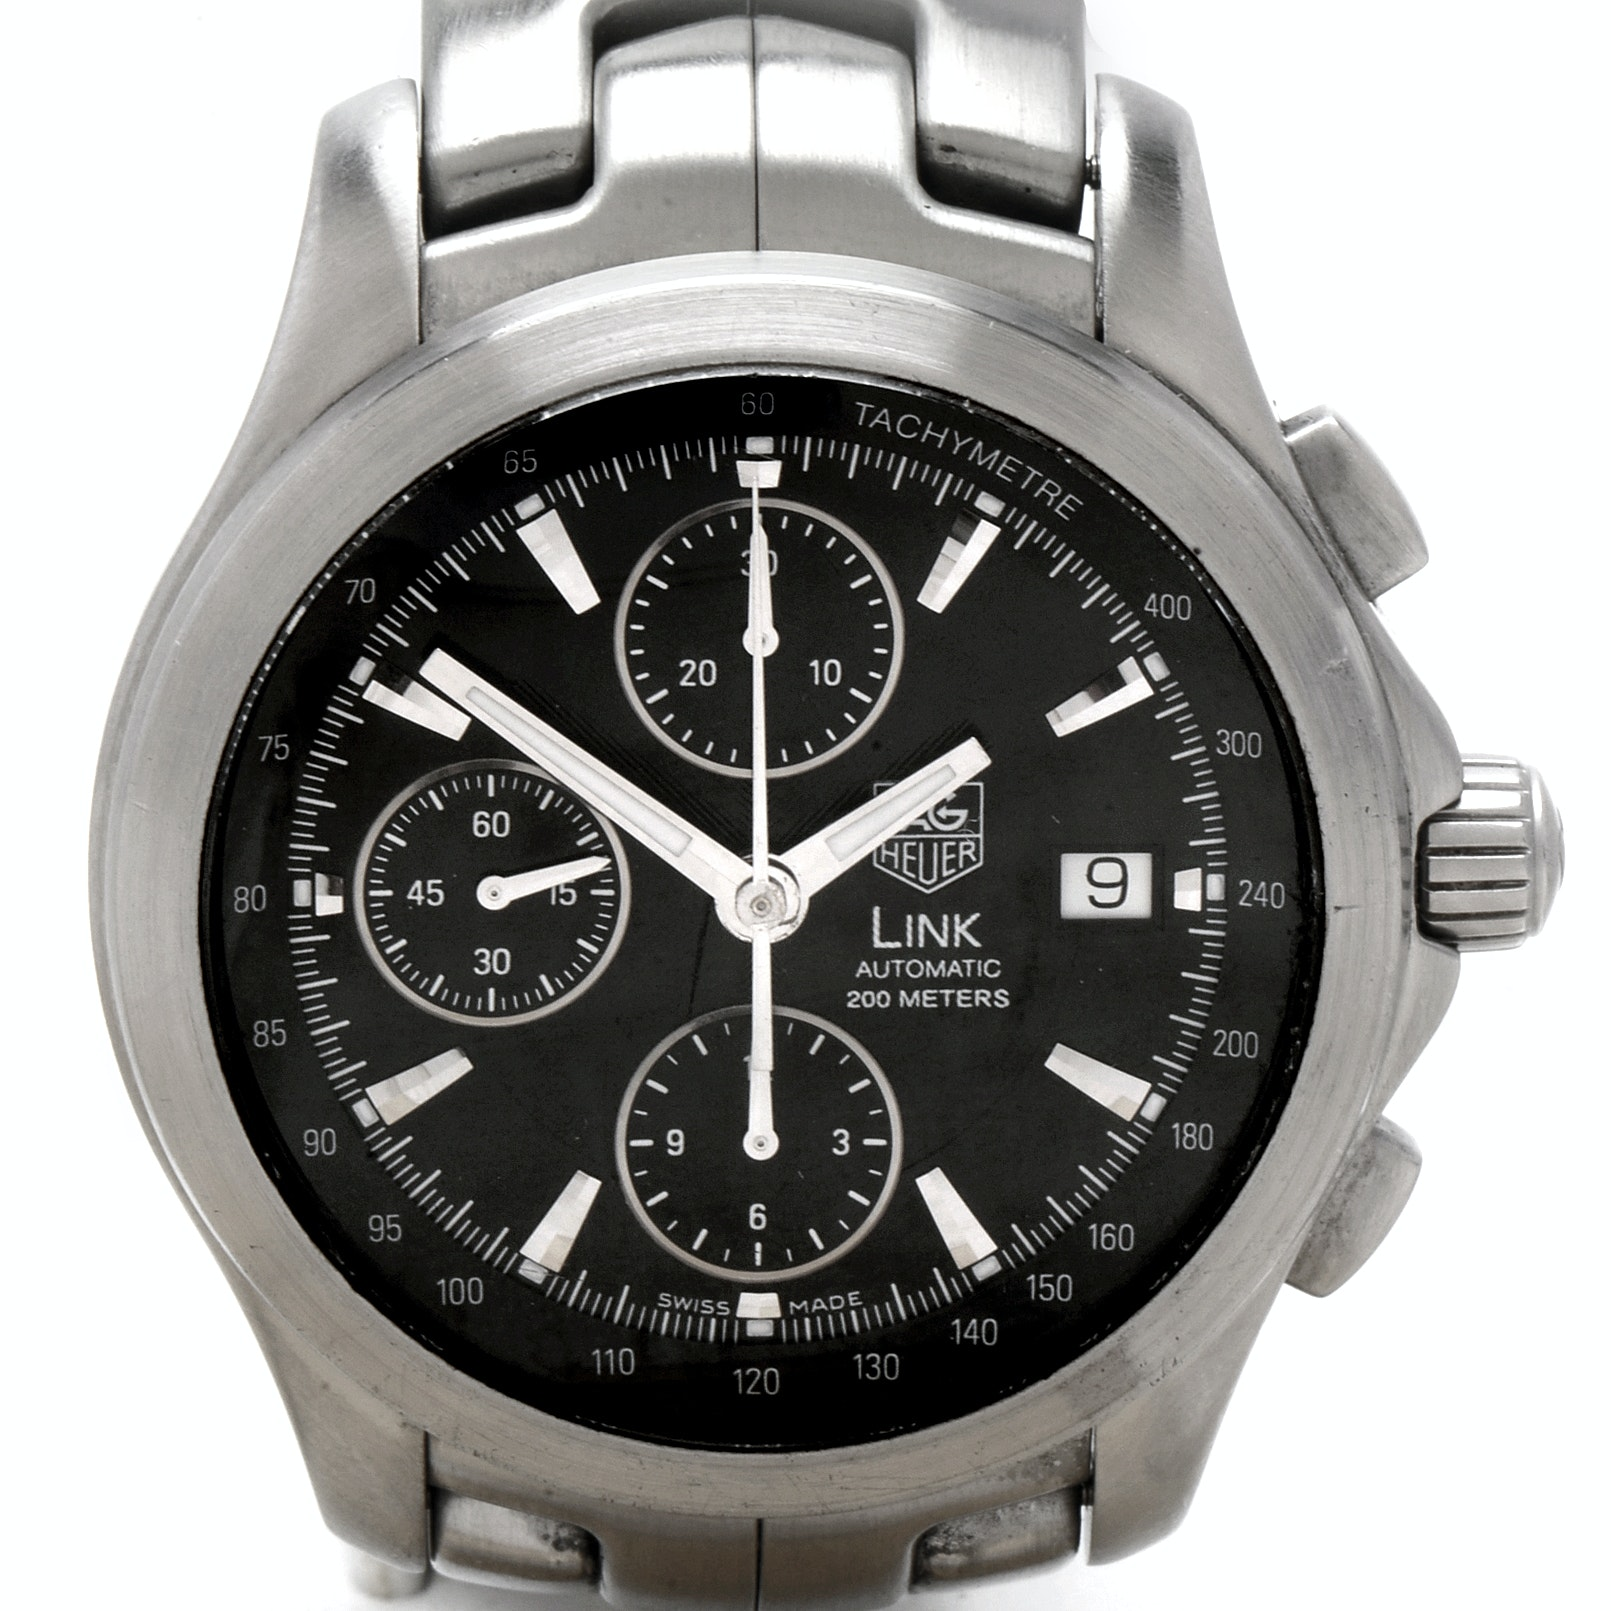 TAG Heuer Link Automatic Chronograph 200M Stainless Steel Wristwatch